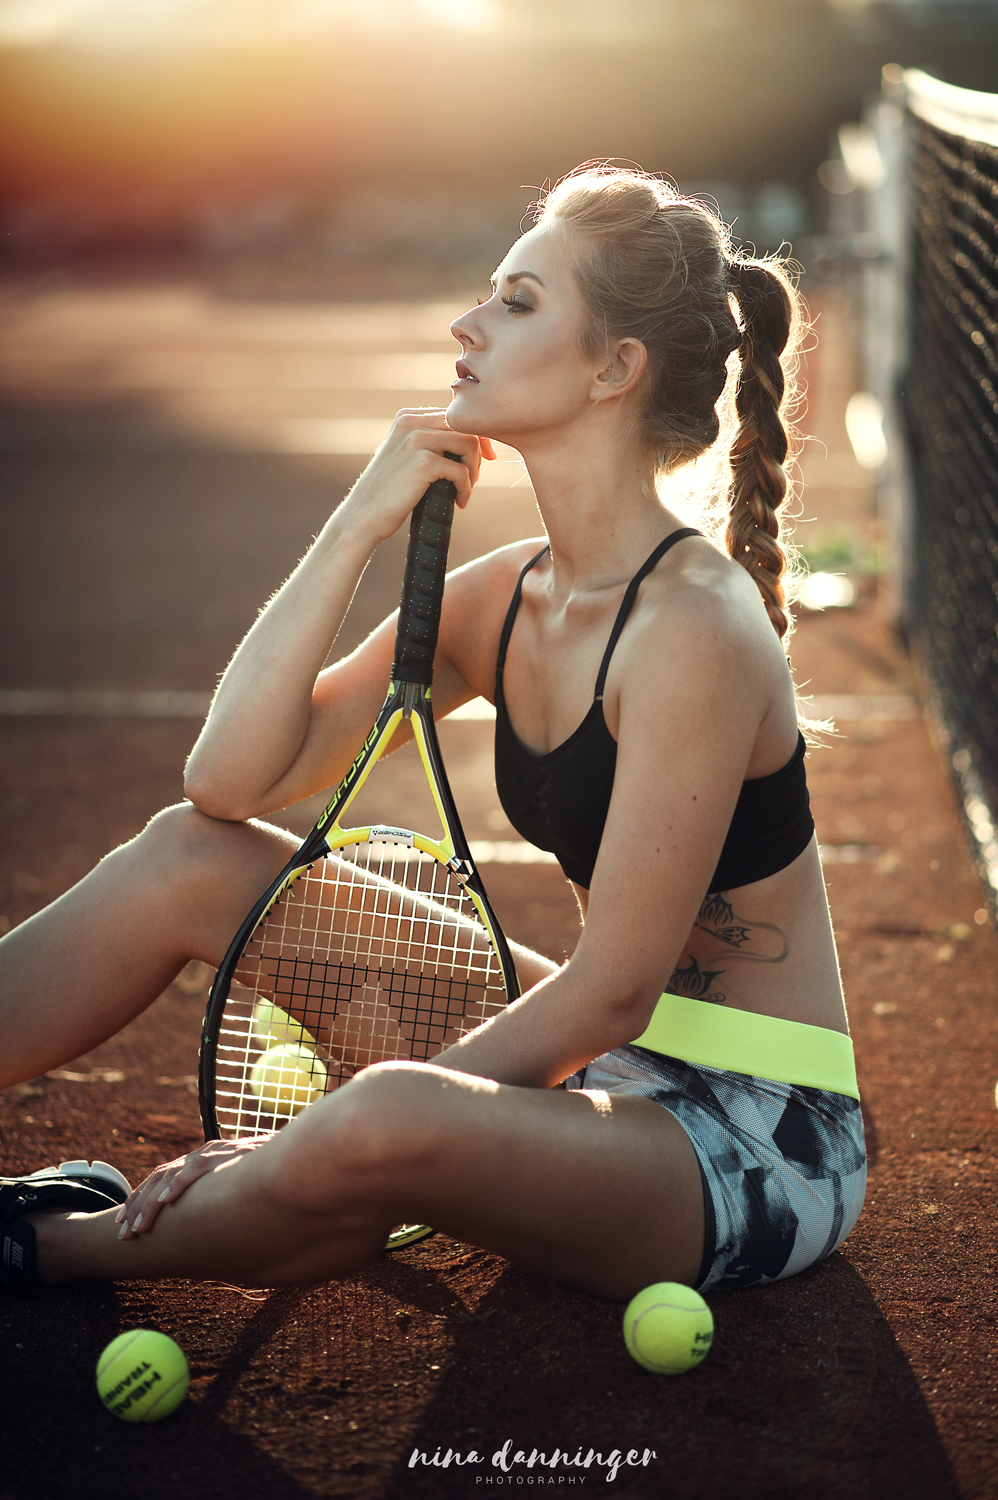 Sport Fashion Shooting Tennis